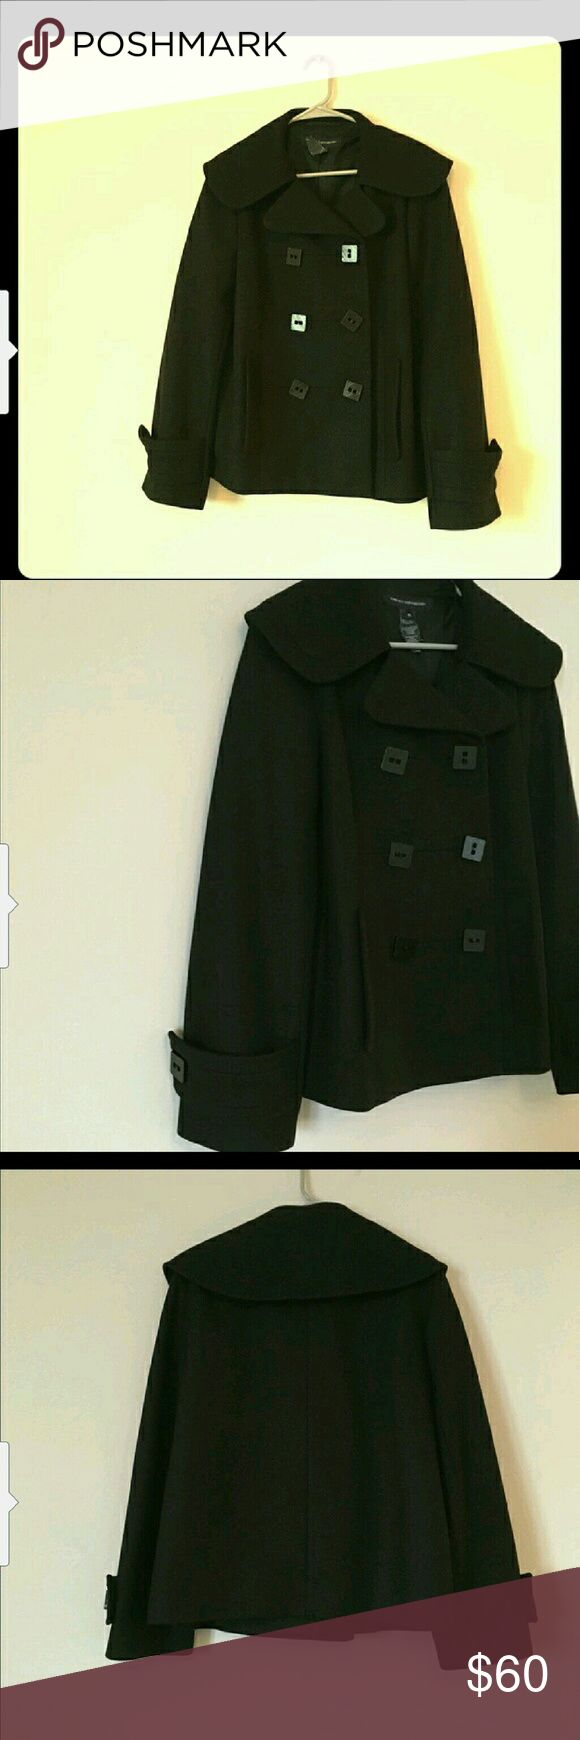 French connection pea coat This coat is in excellent condition. Sadly just too big for me. It's very thick and true to size. I love the unique buttons and collar style. French Connection Jackets & Coats